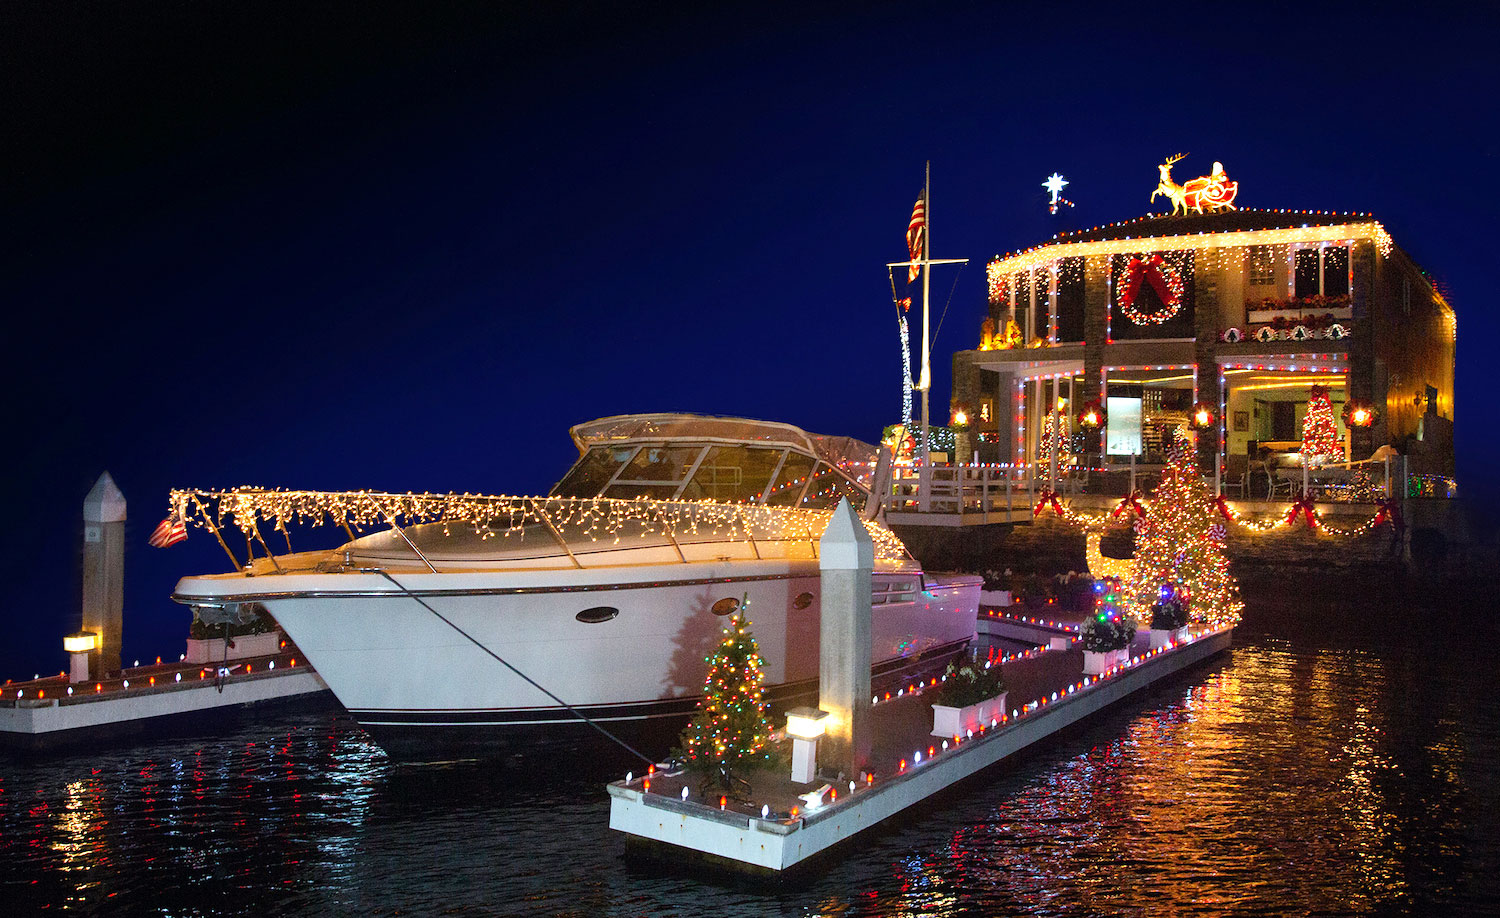 Take Five decorated boat and house